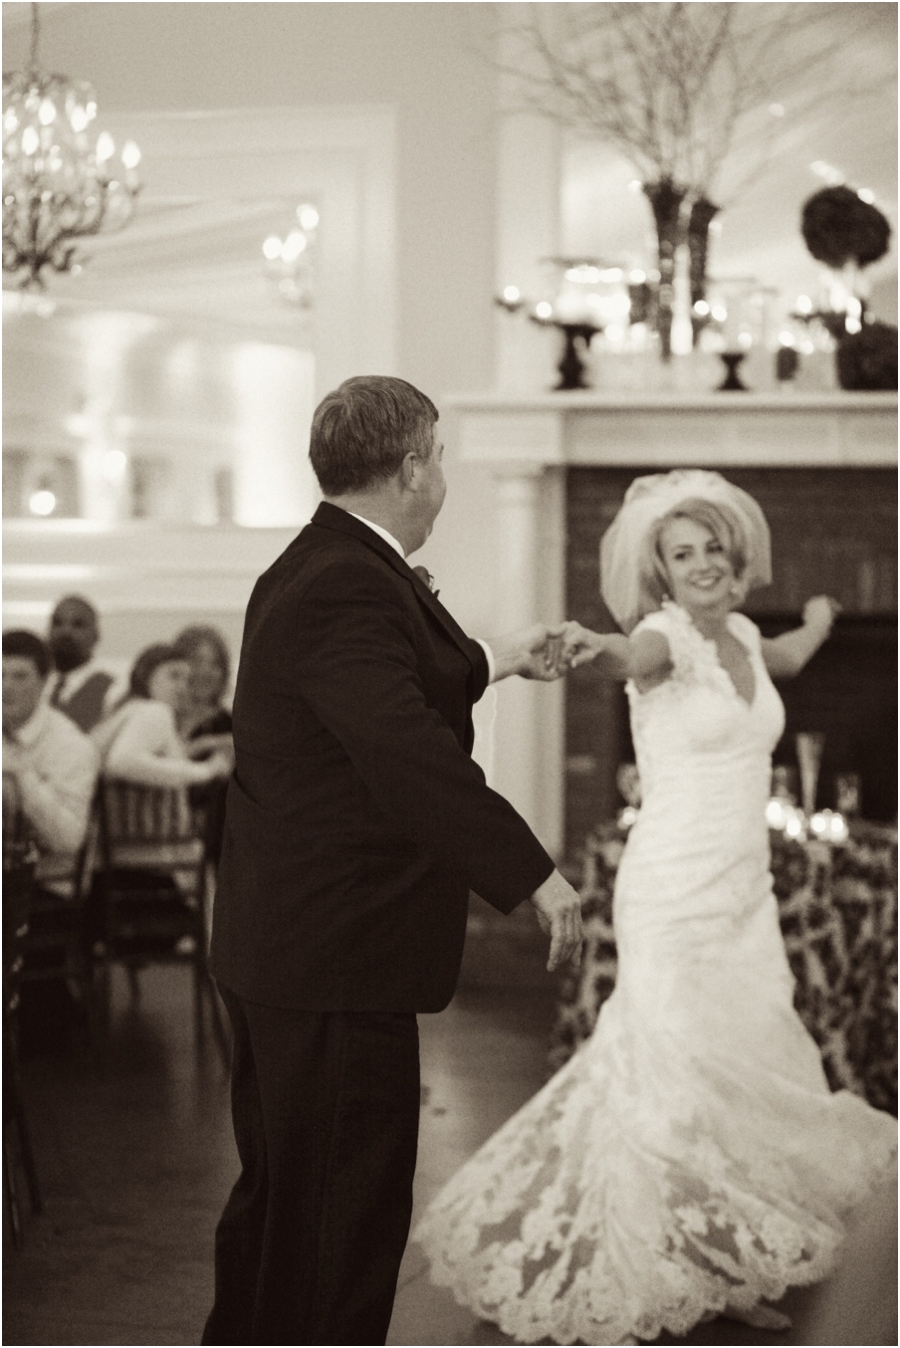 father-daughter dance at wedding reception